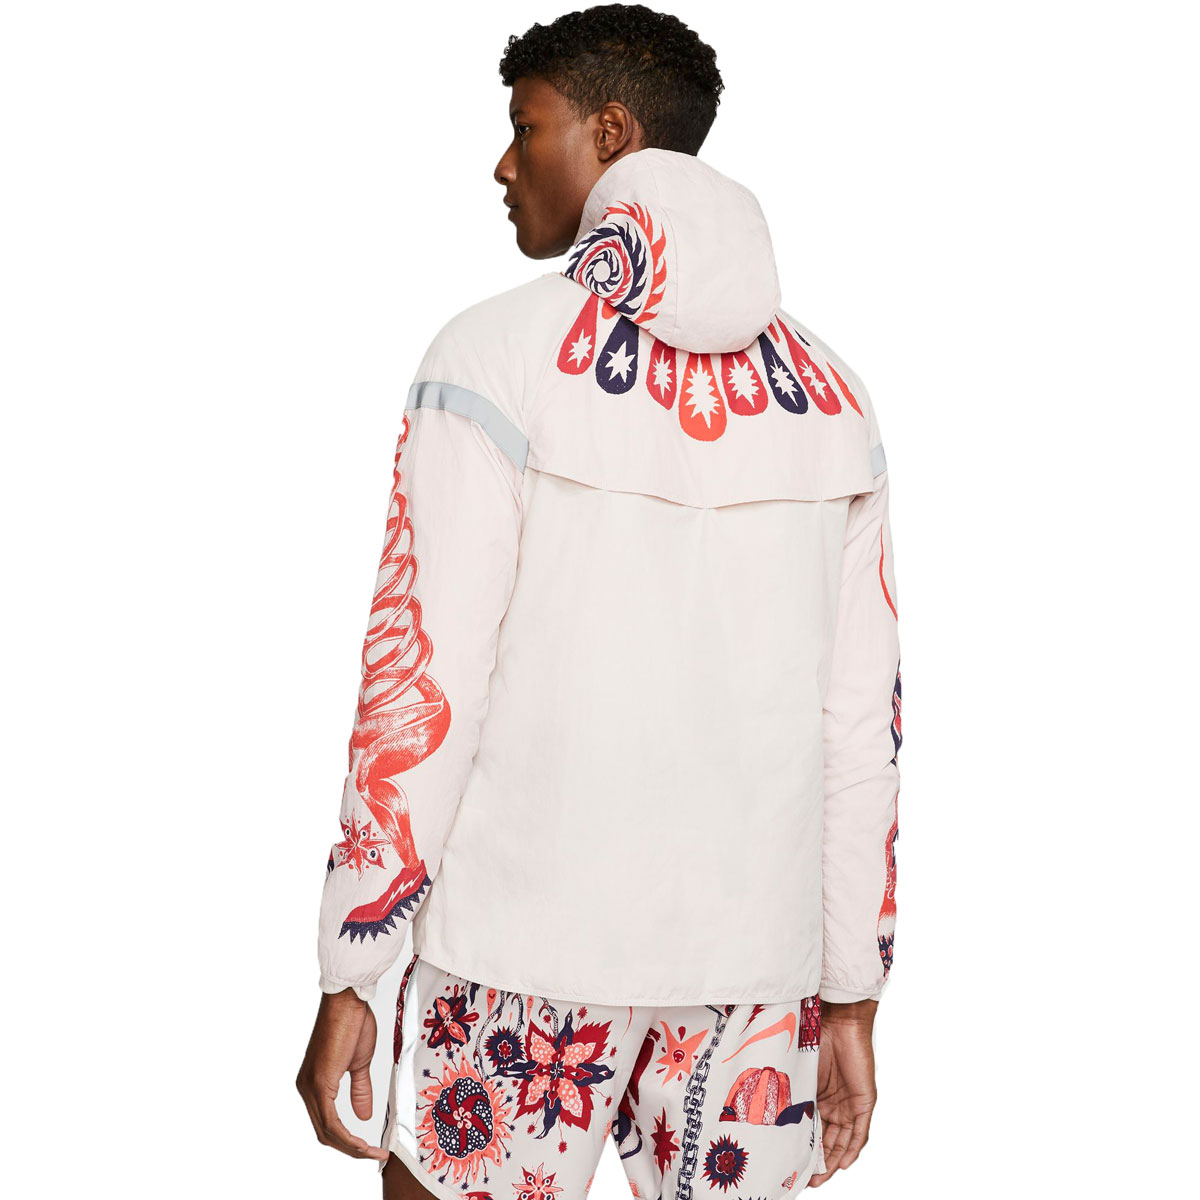 Men's Nike Windrunner Wild Run Running Jacket - Color: Barely Rose/Reflective Silver - Size: S, Barely Rose/Reflective Silver, large, image 2